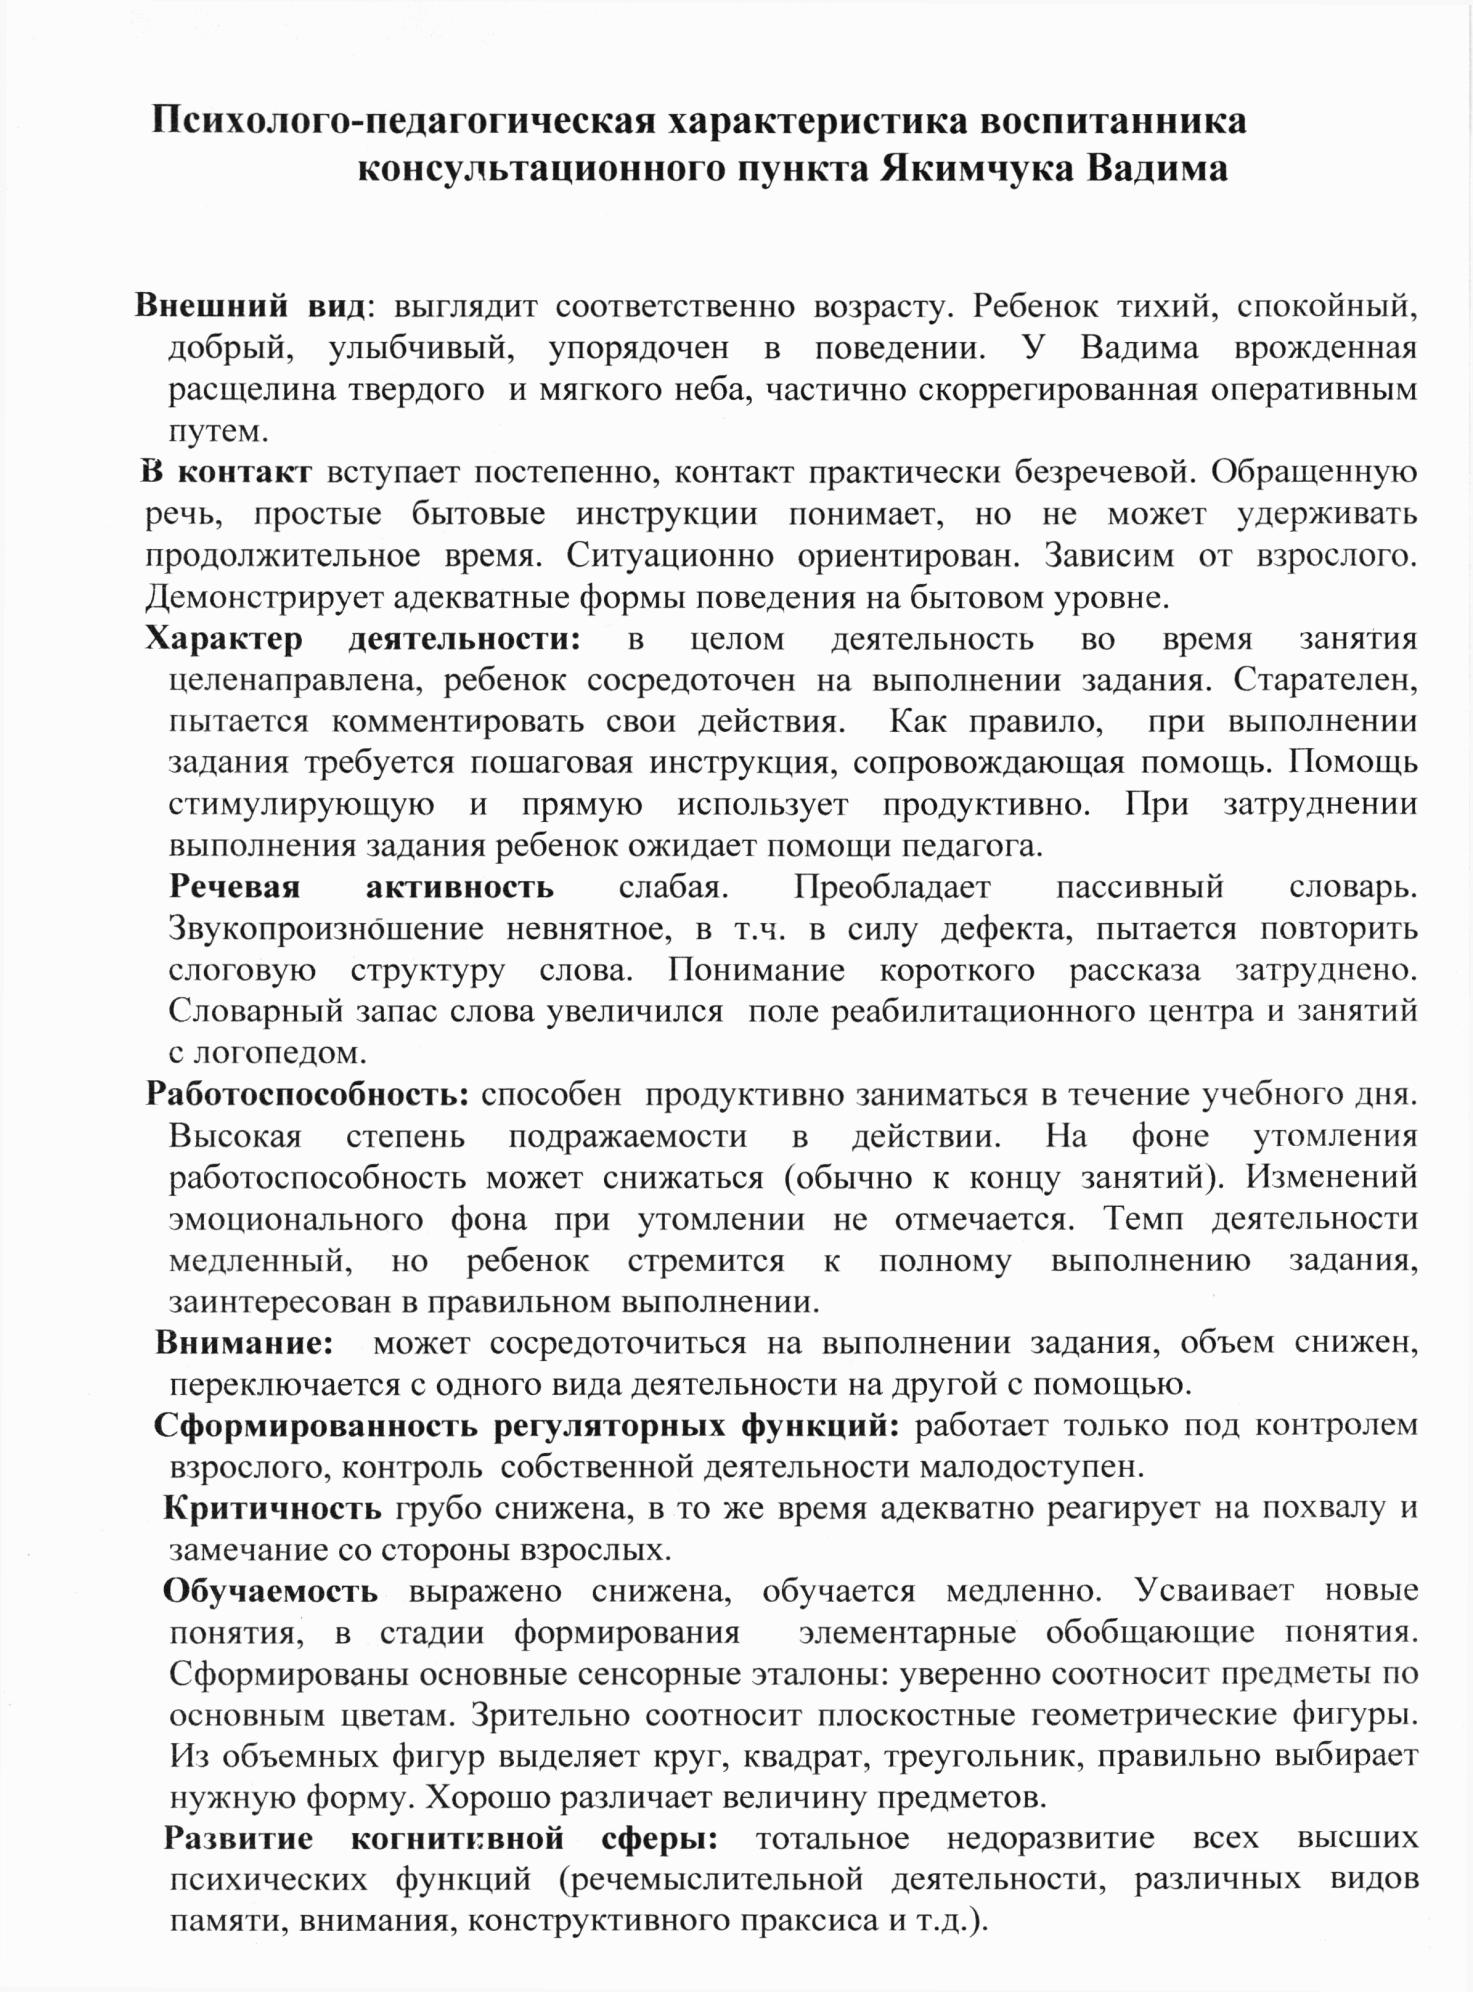 C:\Documents and Settings\Admin\Рабочий стол\1 - 0001.tif